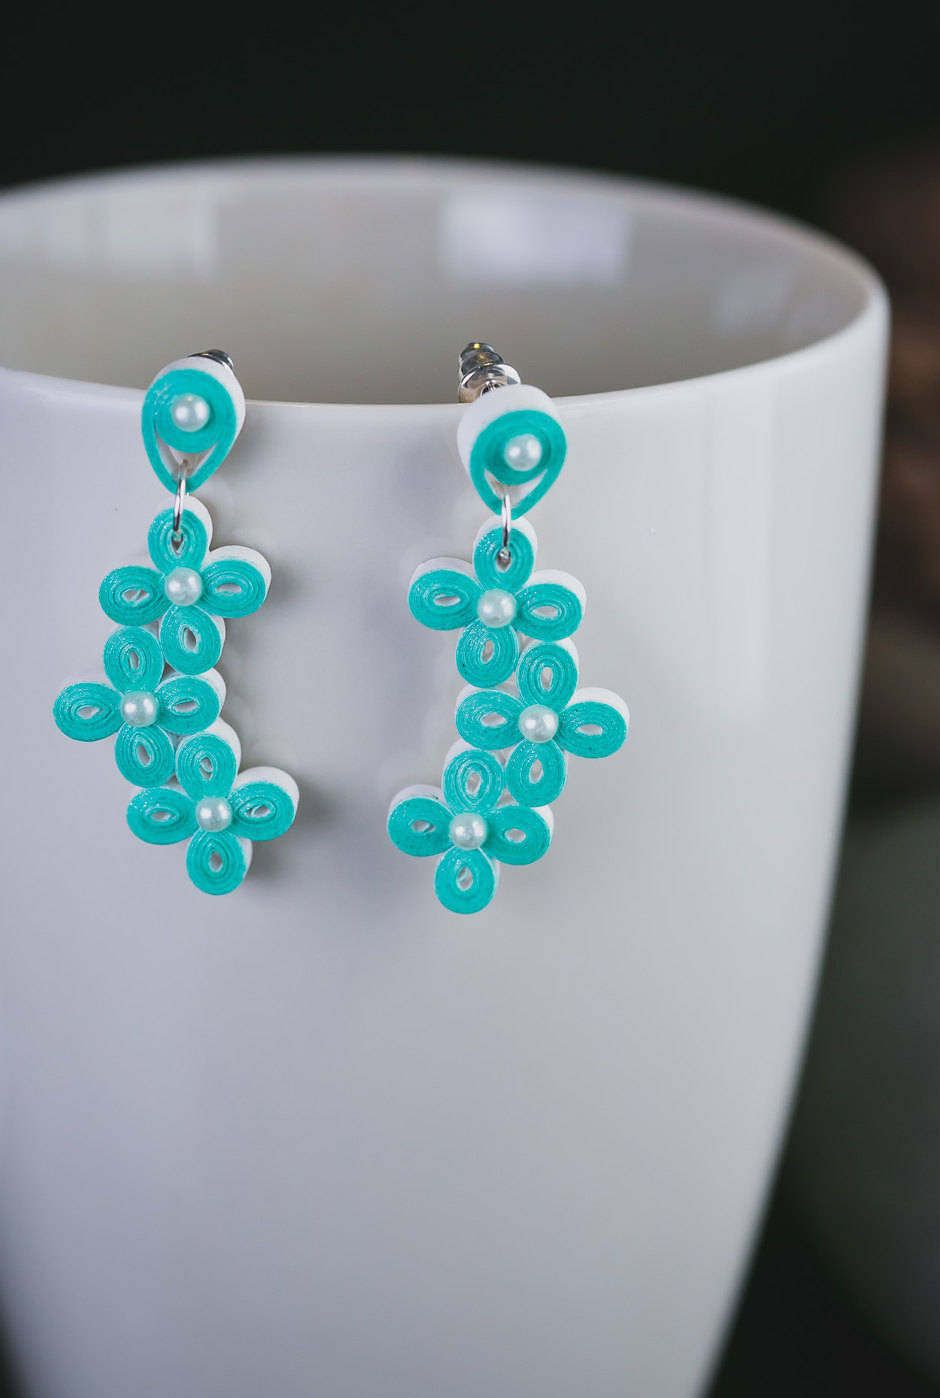 Teal Earrings Stud Flower Hangings Pearl Light Weight Quilling Paper Earring By Papersweetly